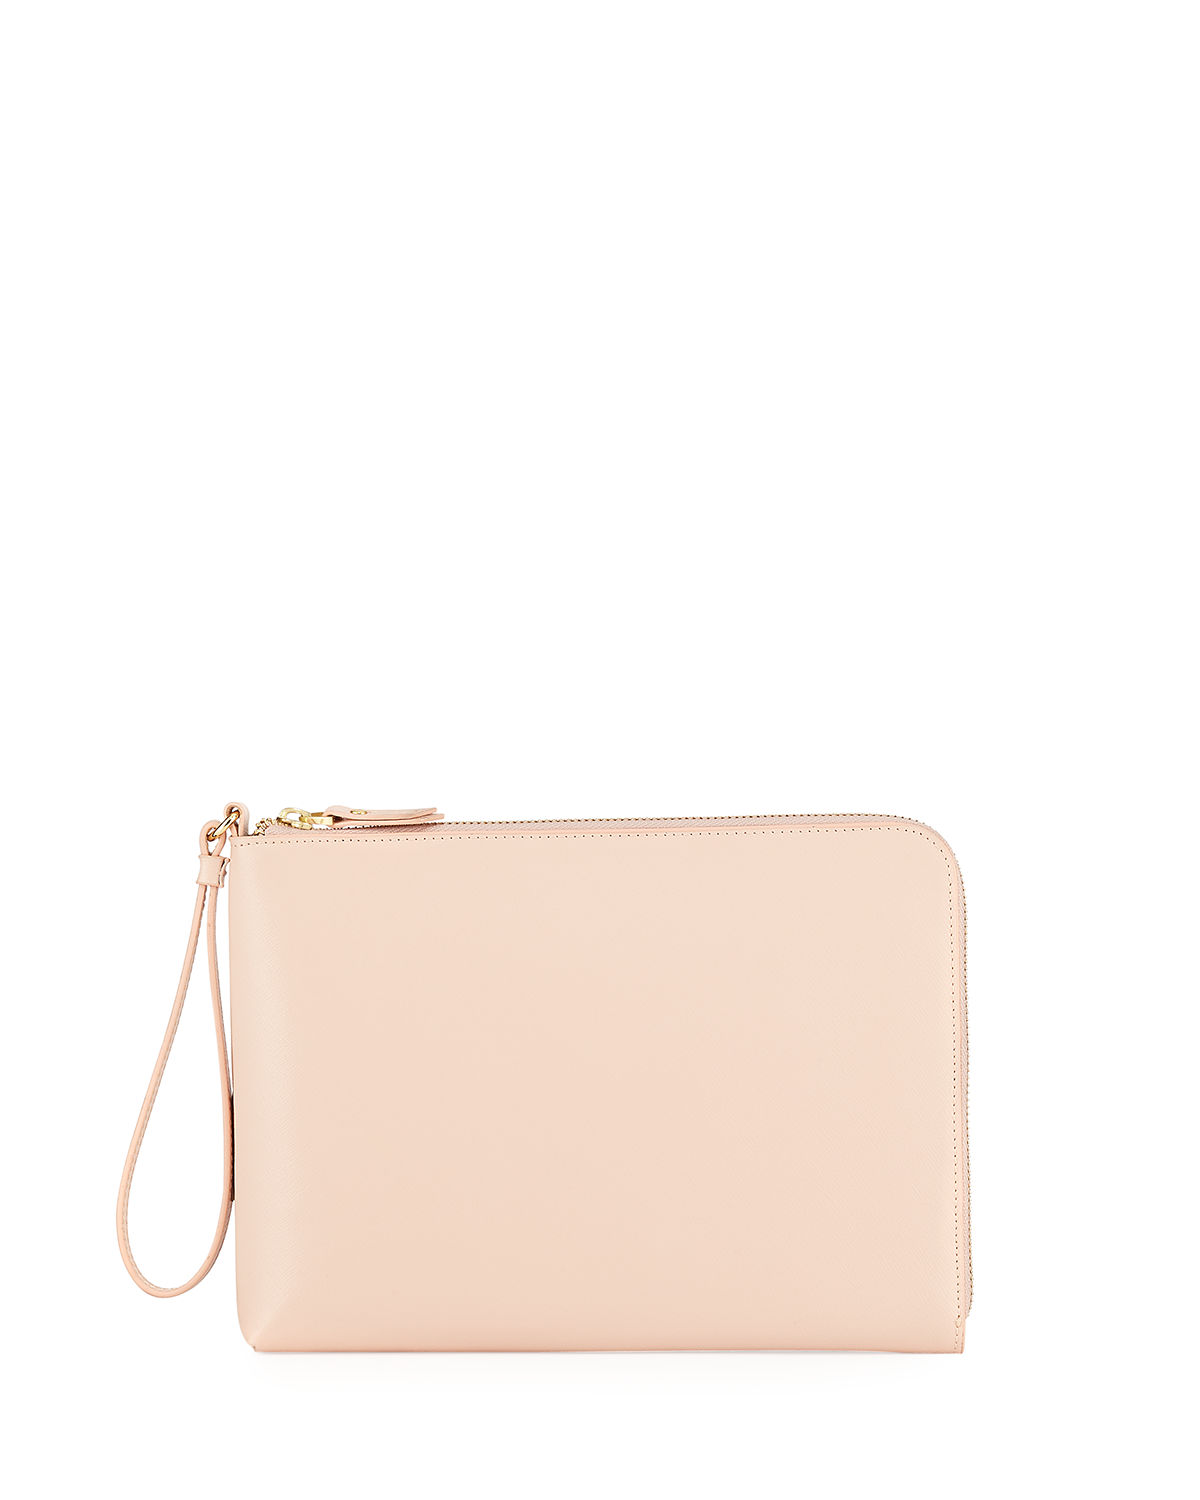 Everything Saffiano Zip Wristlet Wallet